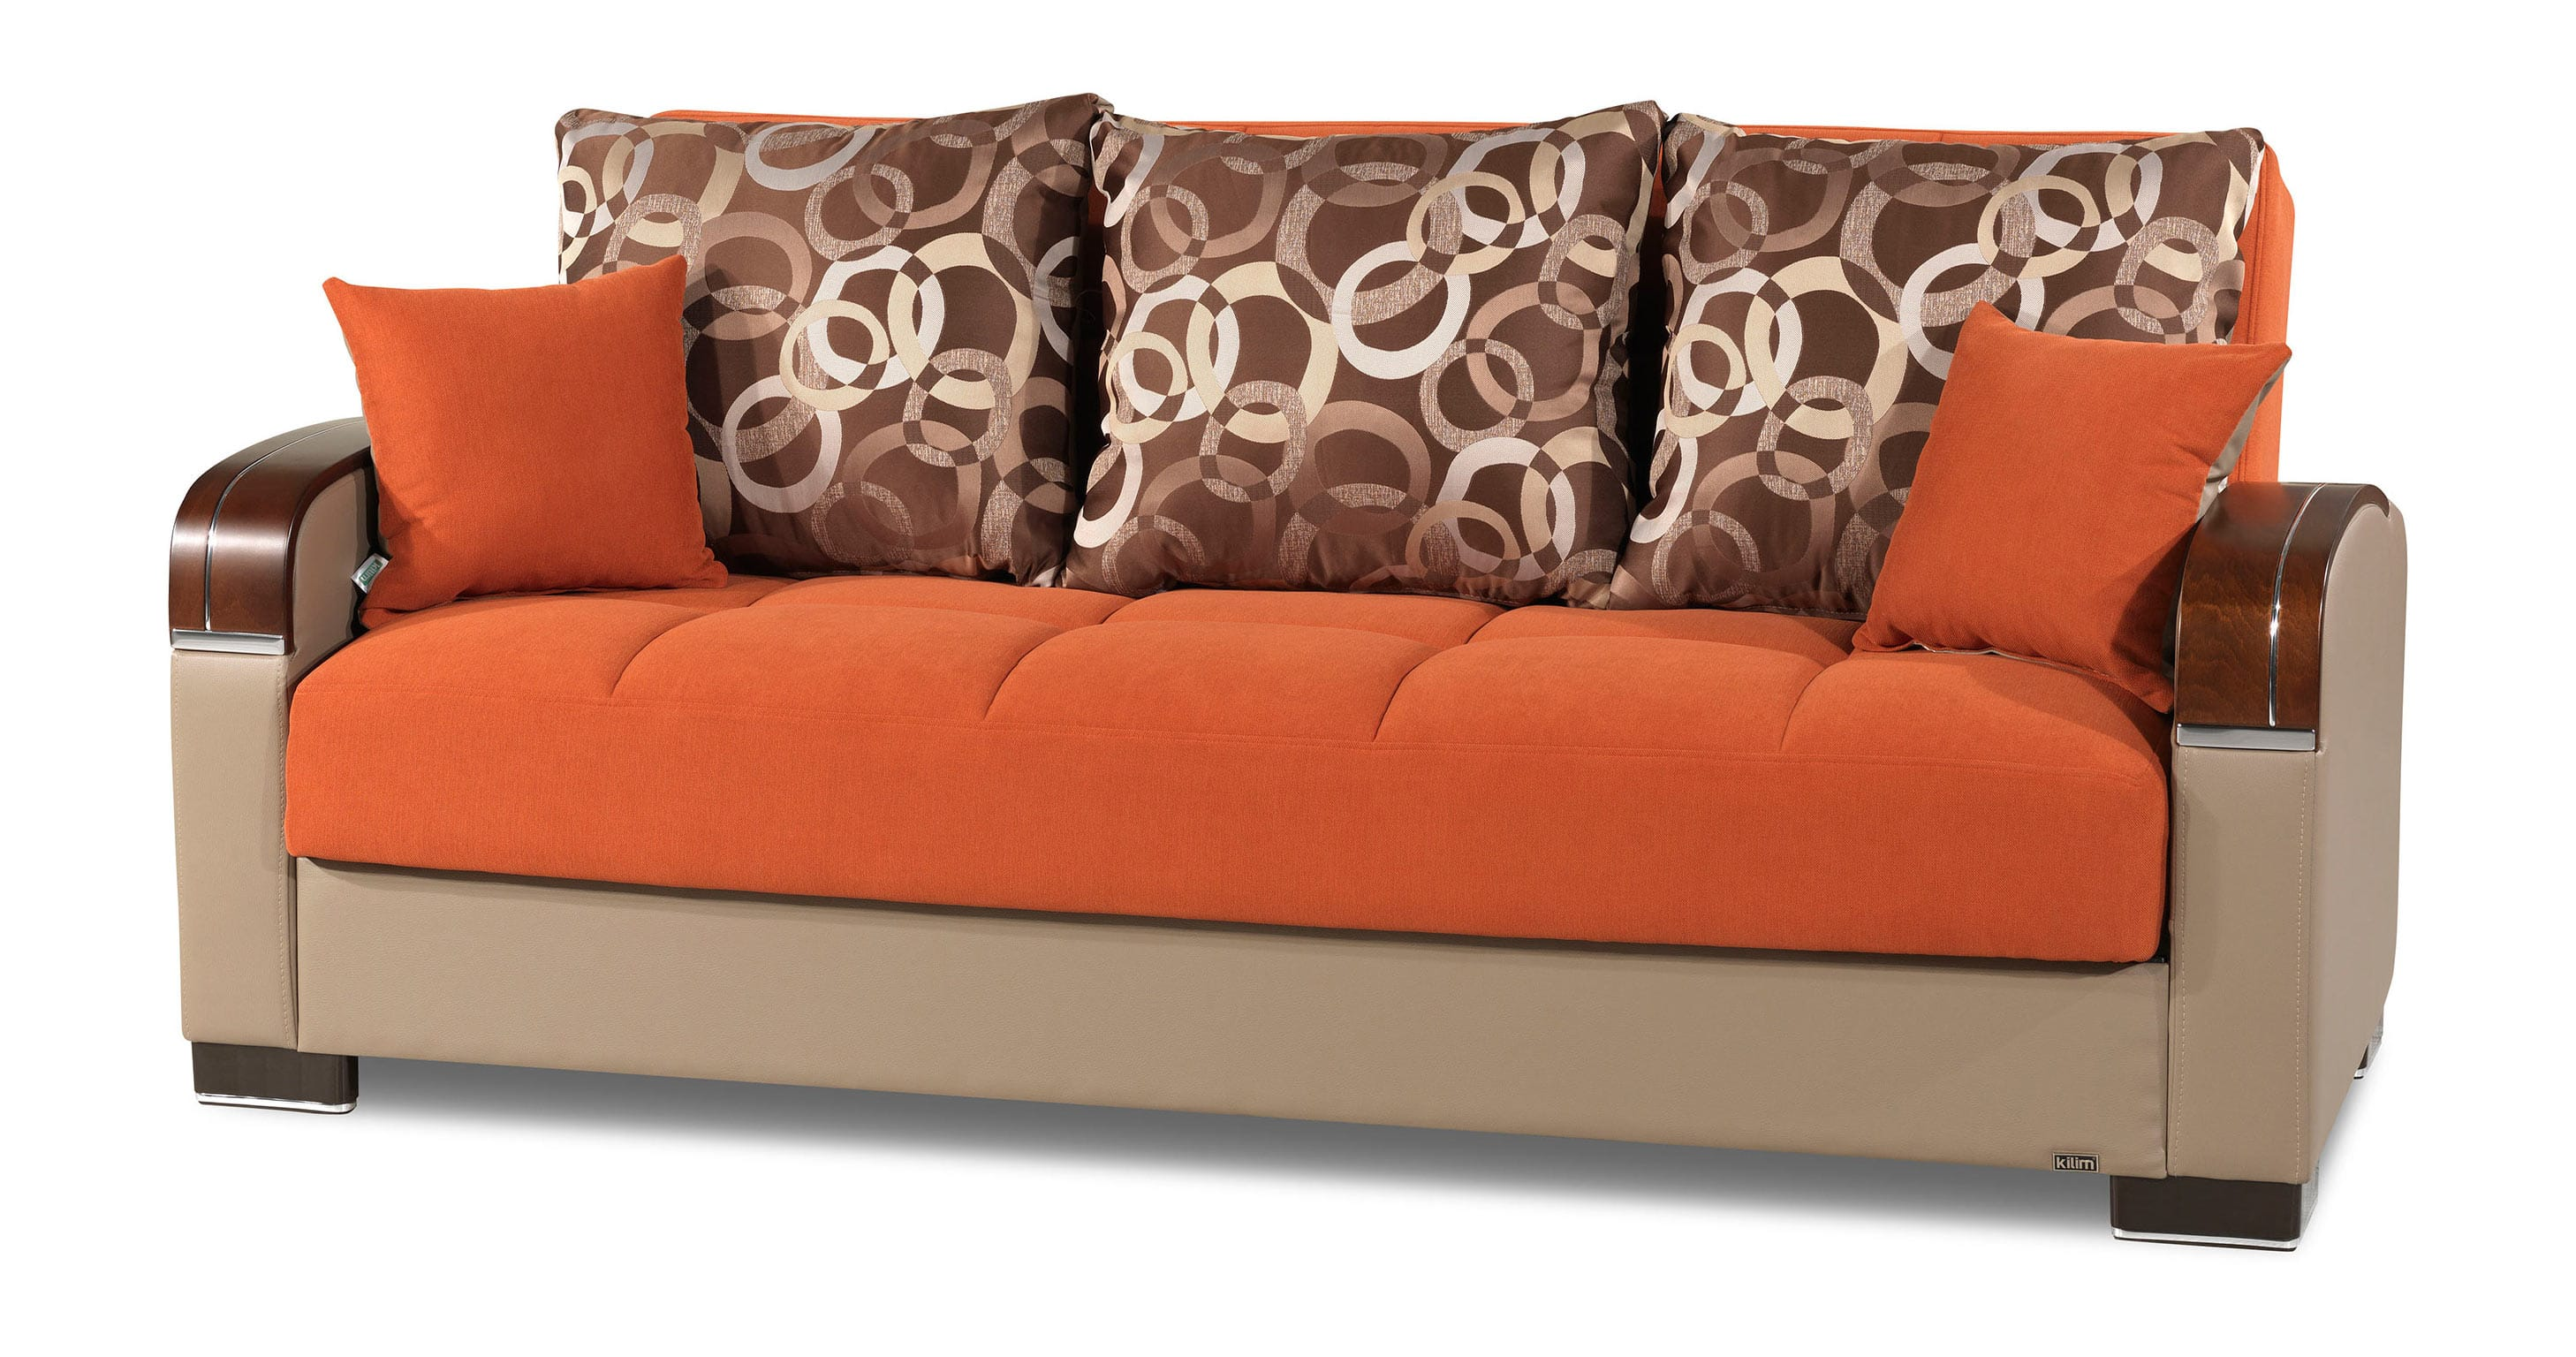 Mobimax orange convertible sofa bed by casamode for Sofa orange